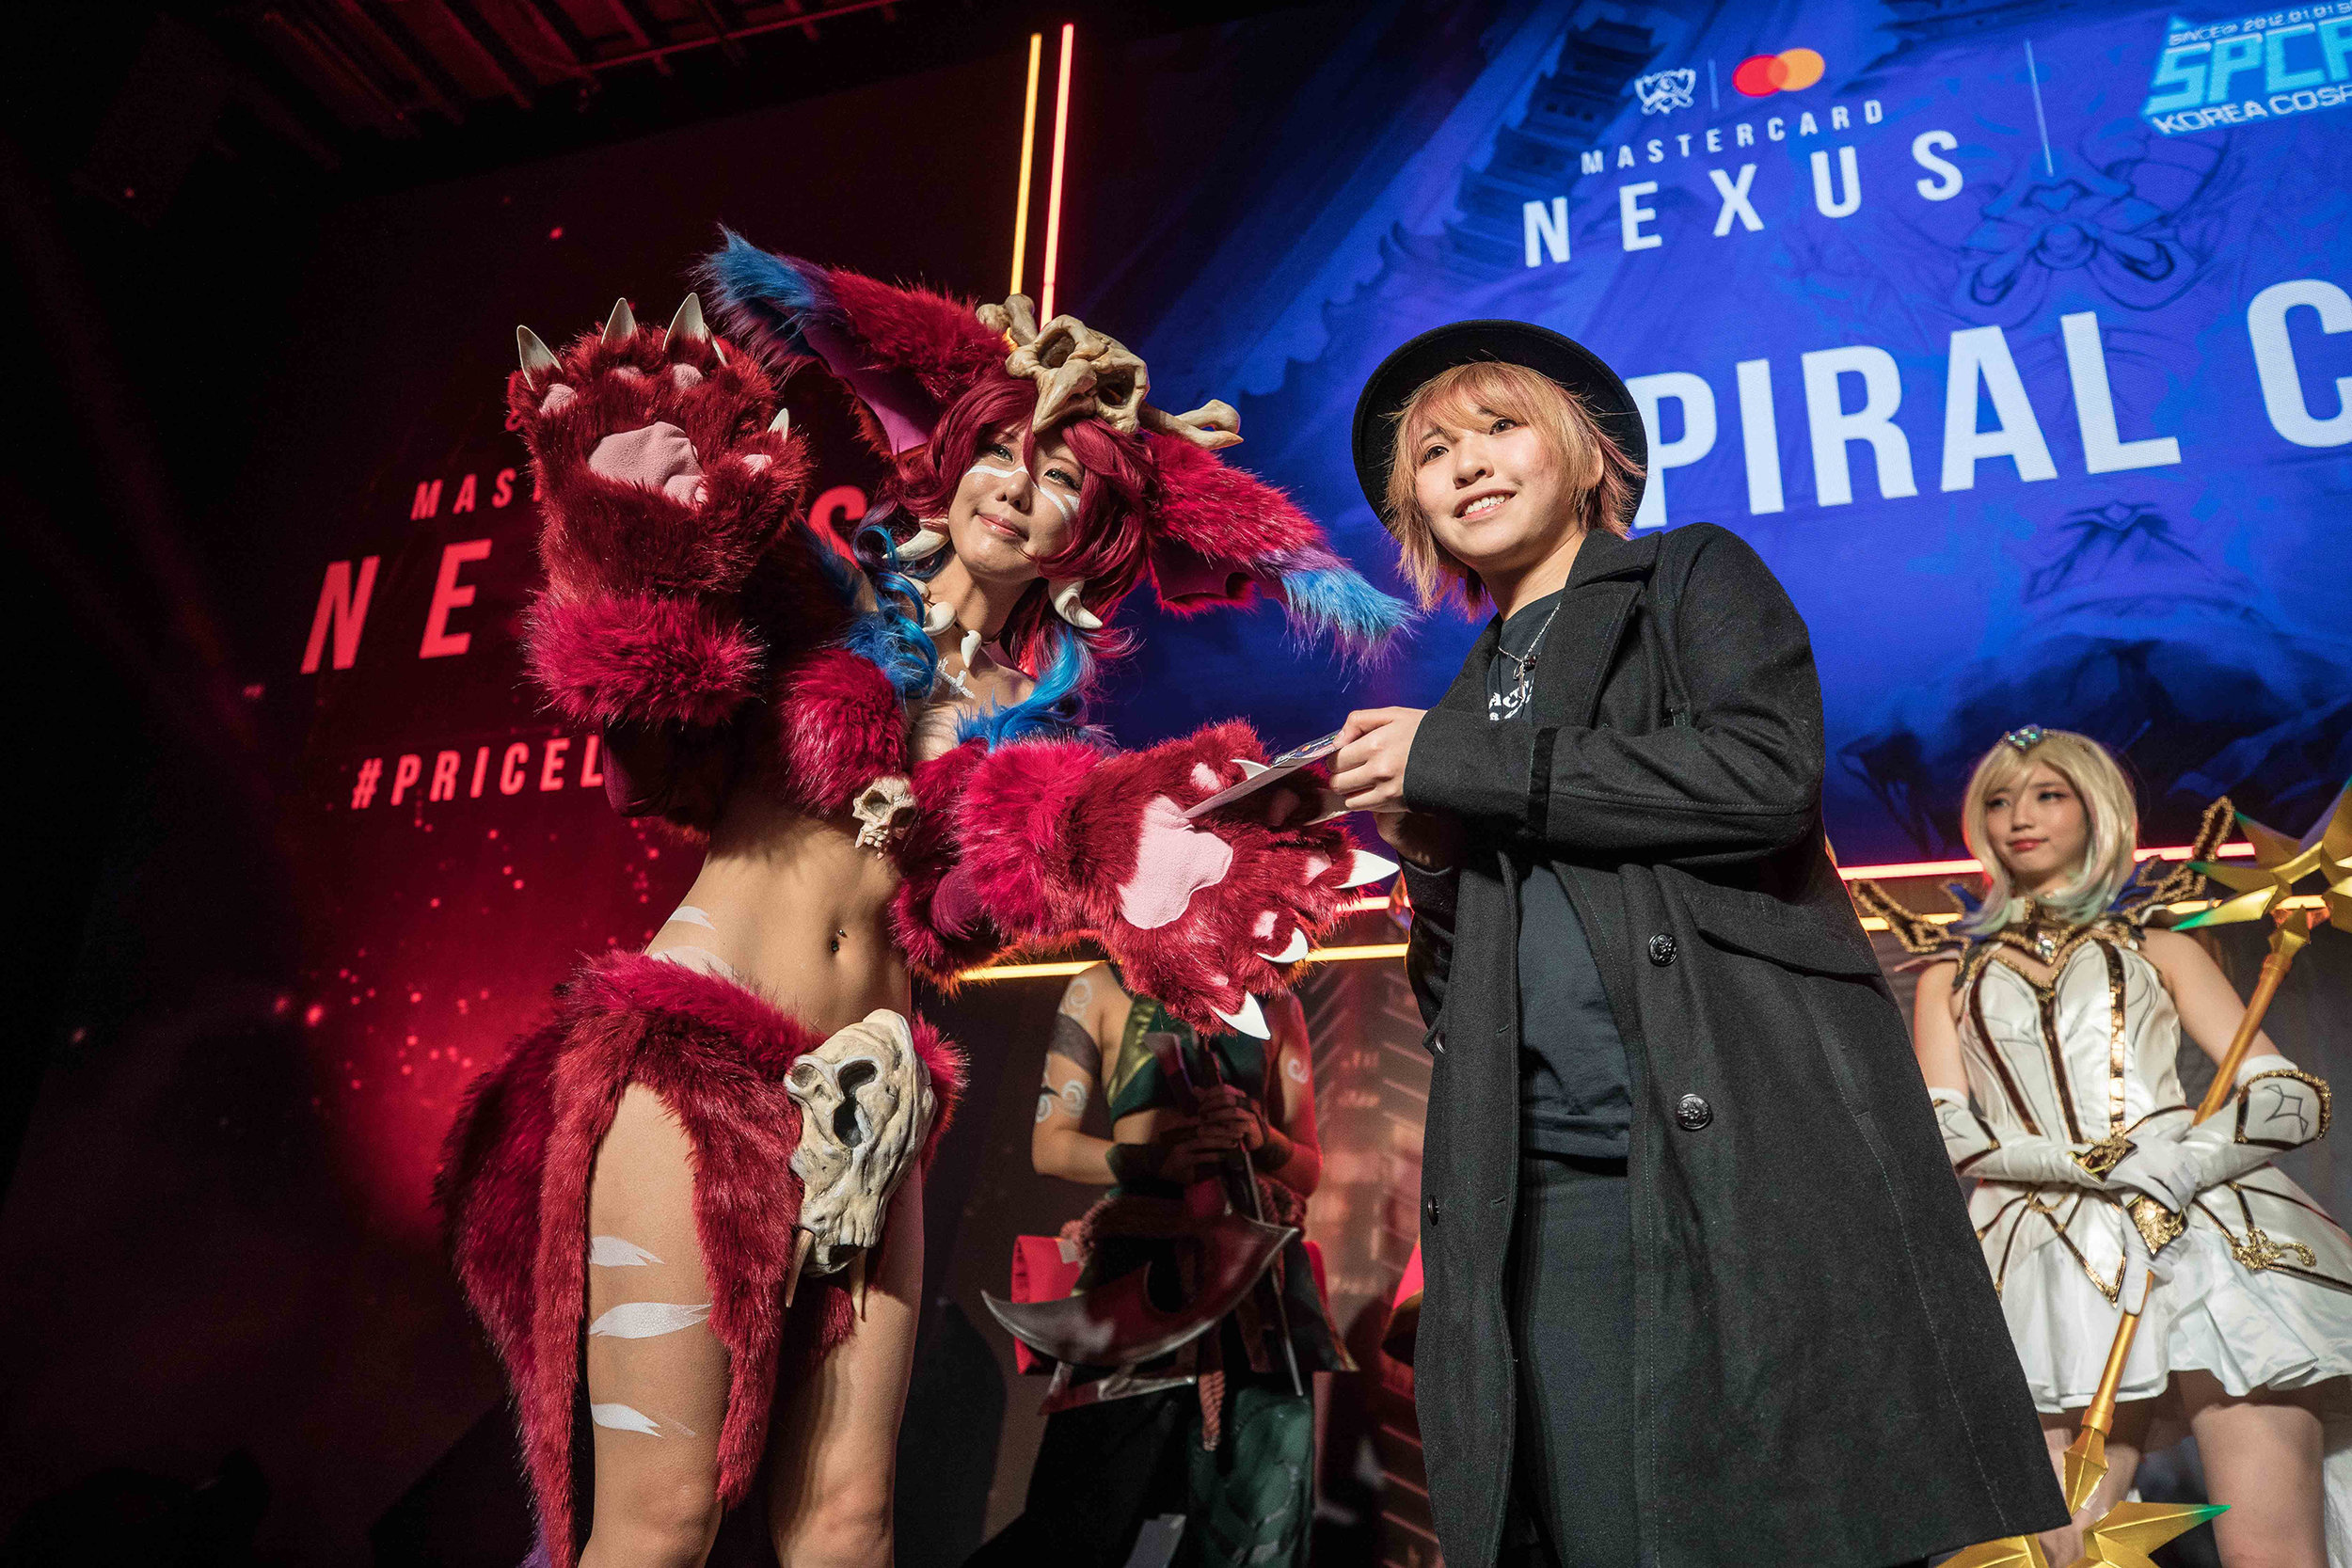 Fan wins a priceless surprise at Mastercard Nexus, 2018 League of Legends World Championship on November 1, 2018 in Incheon, South Korea.  Photo by Hannah Smith / ESPAT Media for Mastercard